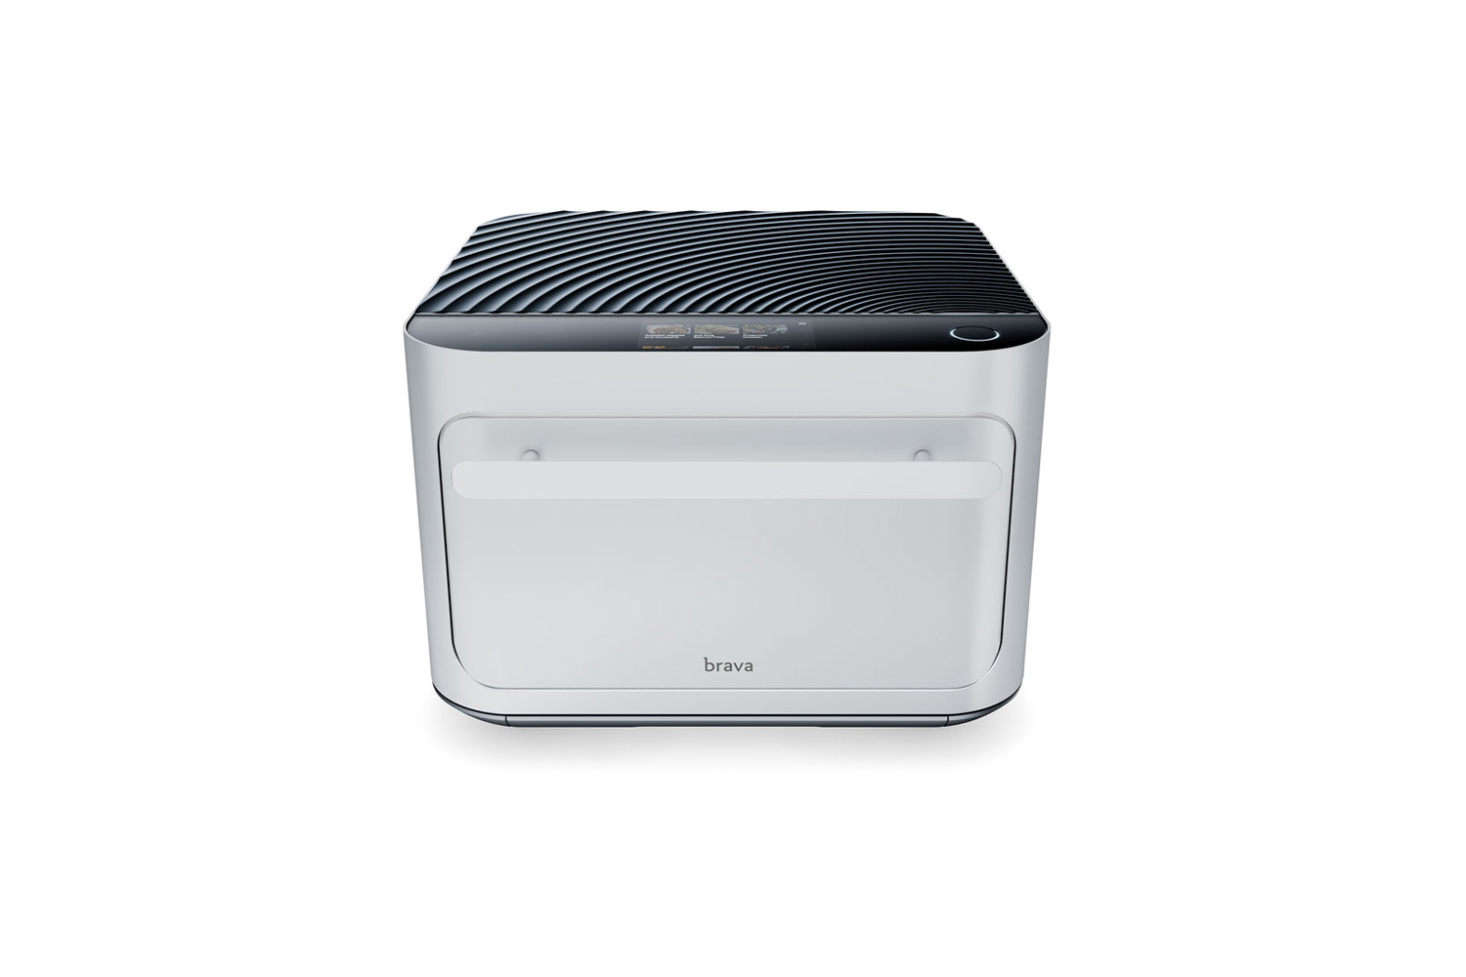 The founders behind Brava wanted to make cooking and meal time more efficient and enjoyable, which led them to create a light-based heat source that cooks food faster than traditional ovens. The accompanying app has recipes that can be loaded into the Brava, which then self-adjusts for time and temperature; $795.